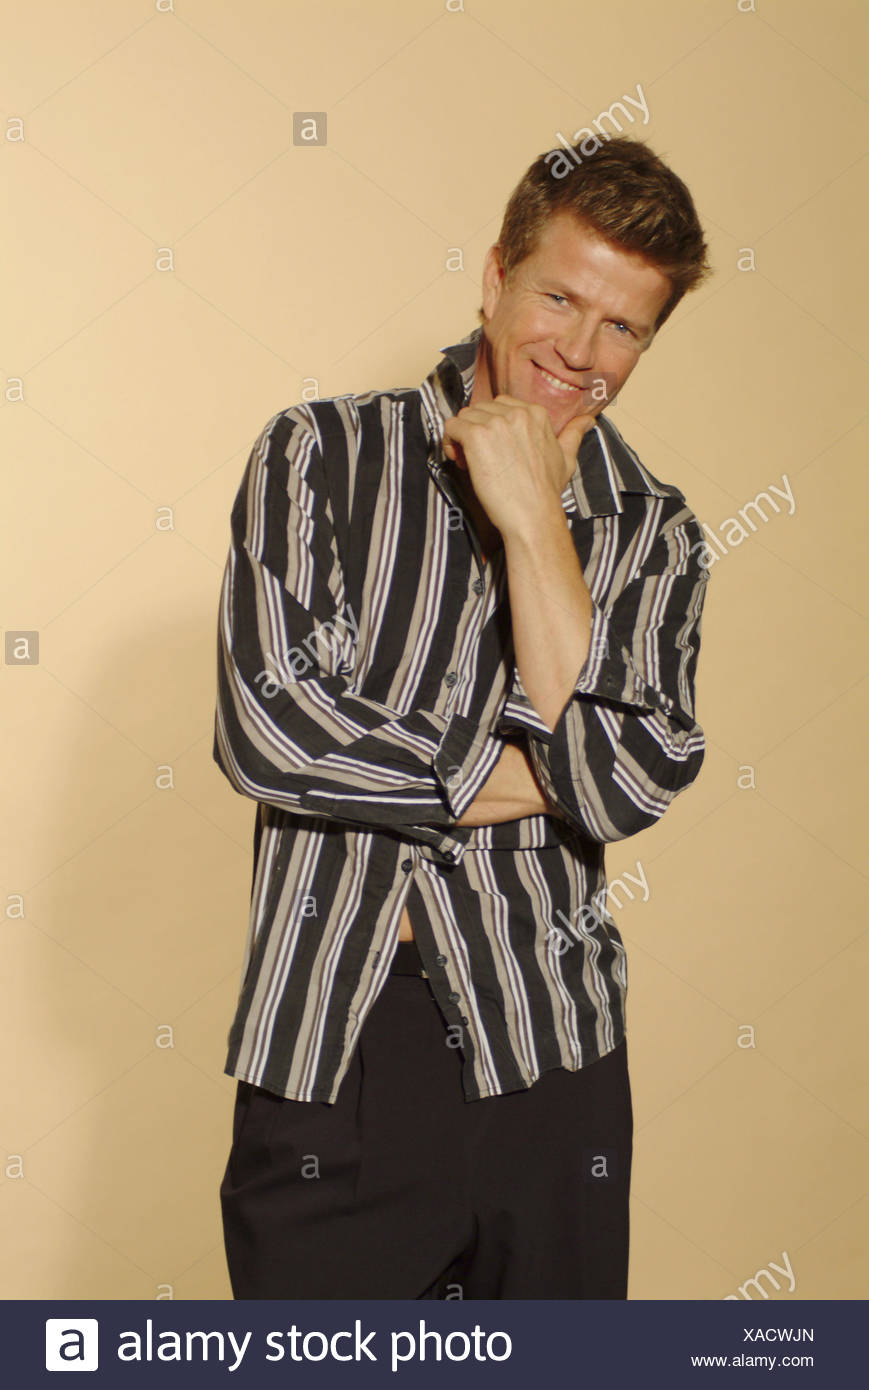 Man, smile young, shirt touched, gesture, detail, 30-40 years, stand, blond, hand, chin, laxly, casually, careless, friendly, balance, self-assurance, selfconsciousness, cool, happy, view camera, clothes, fashionably, fashion, Fashion, style, look, outfit - Stock Image